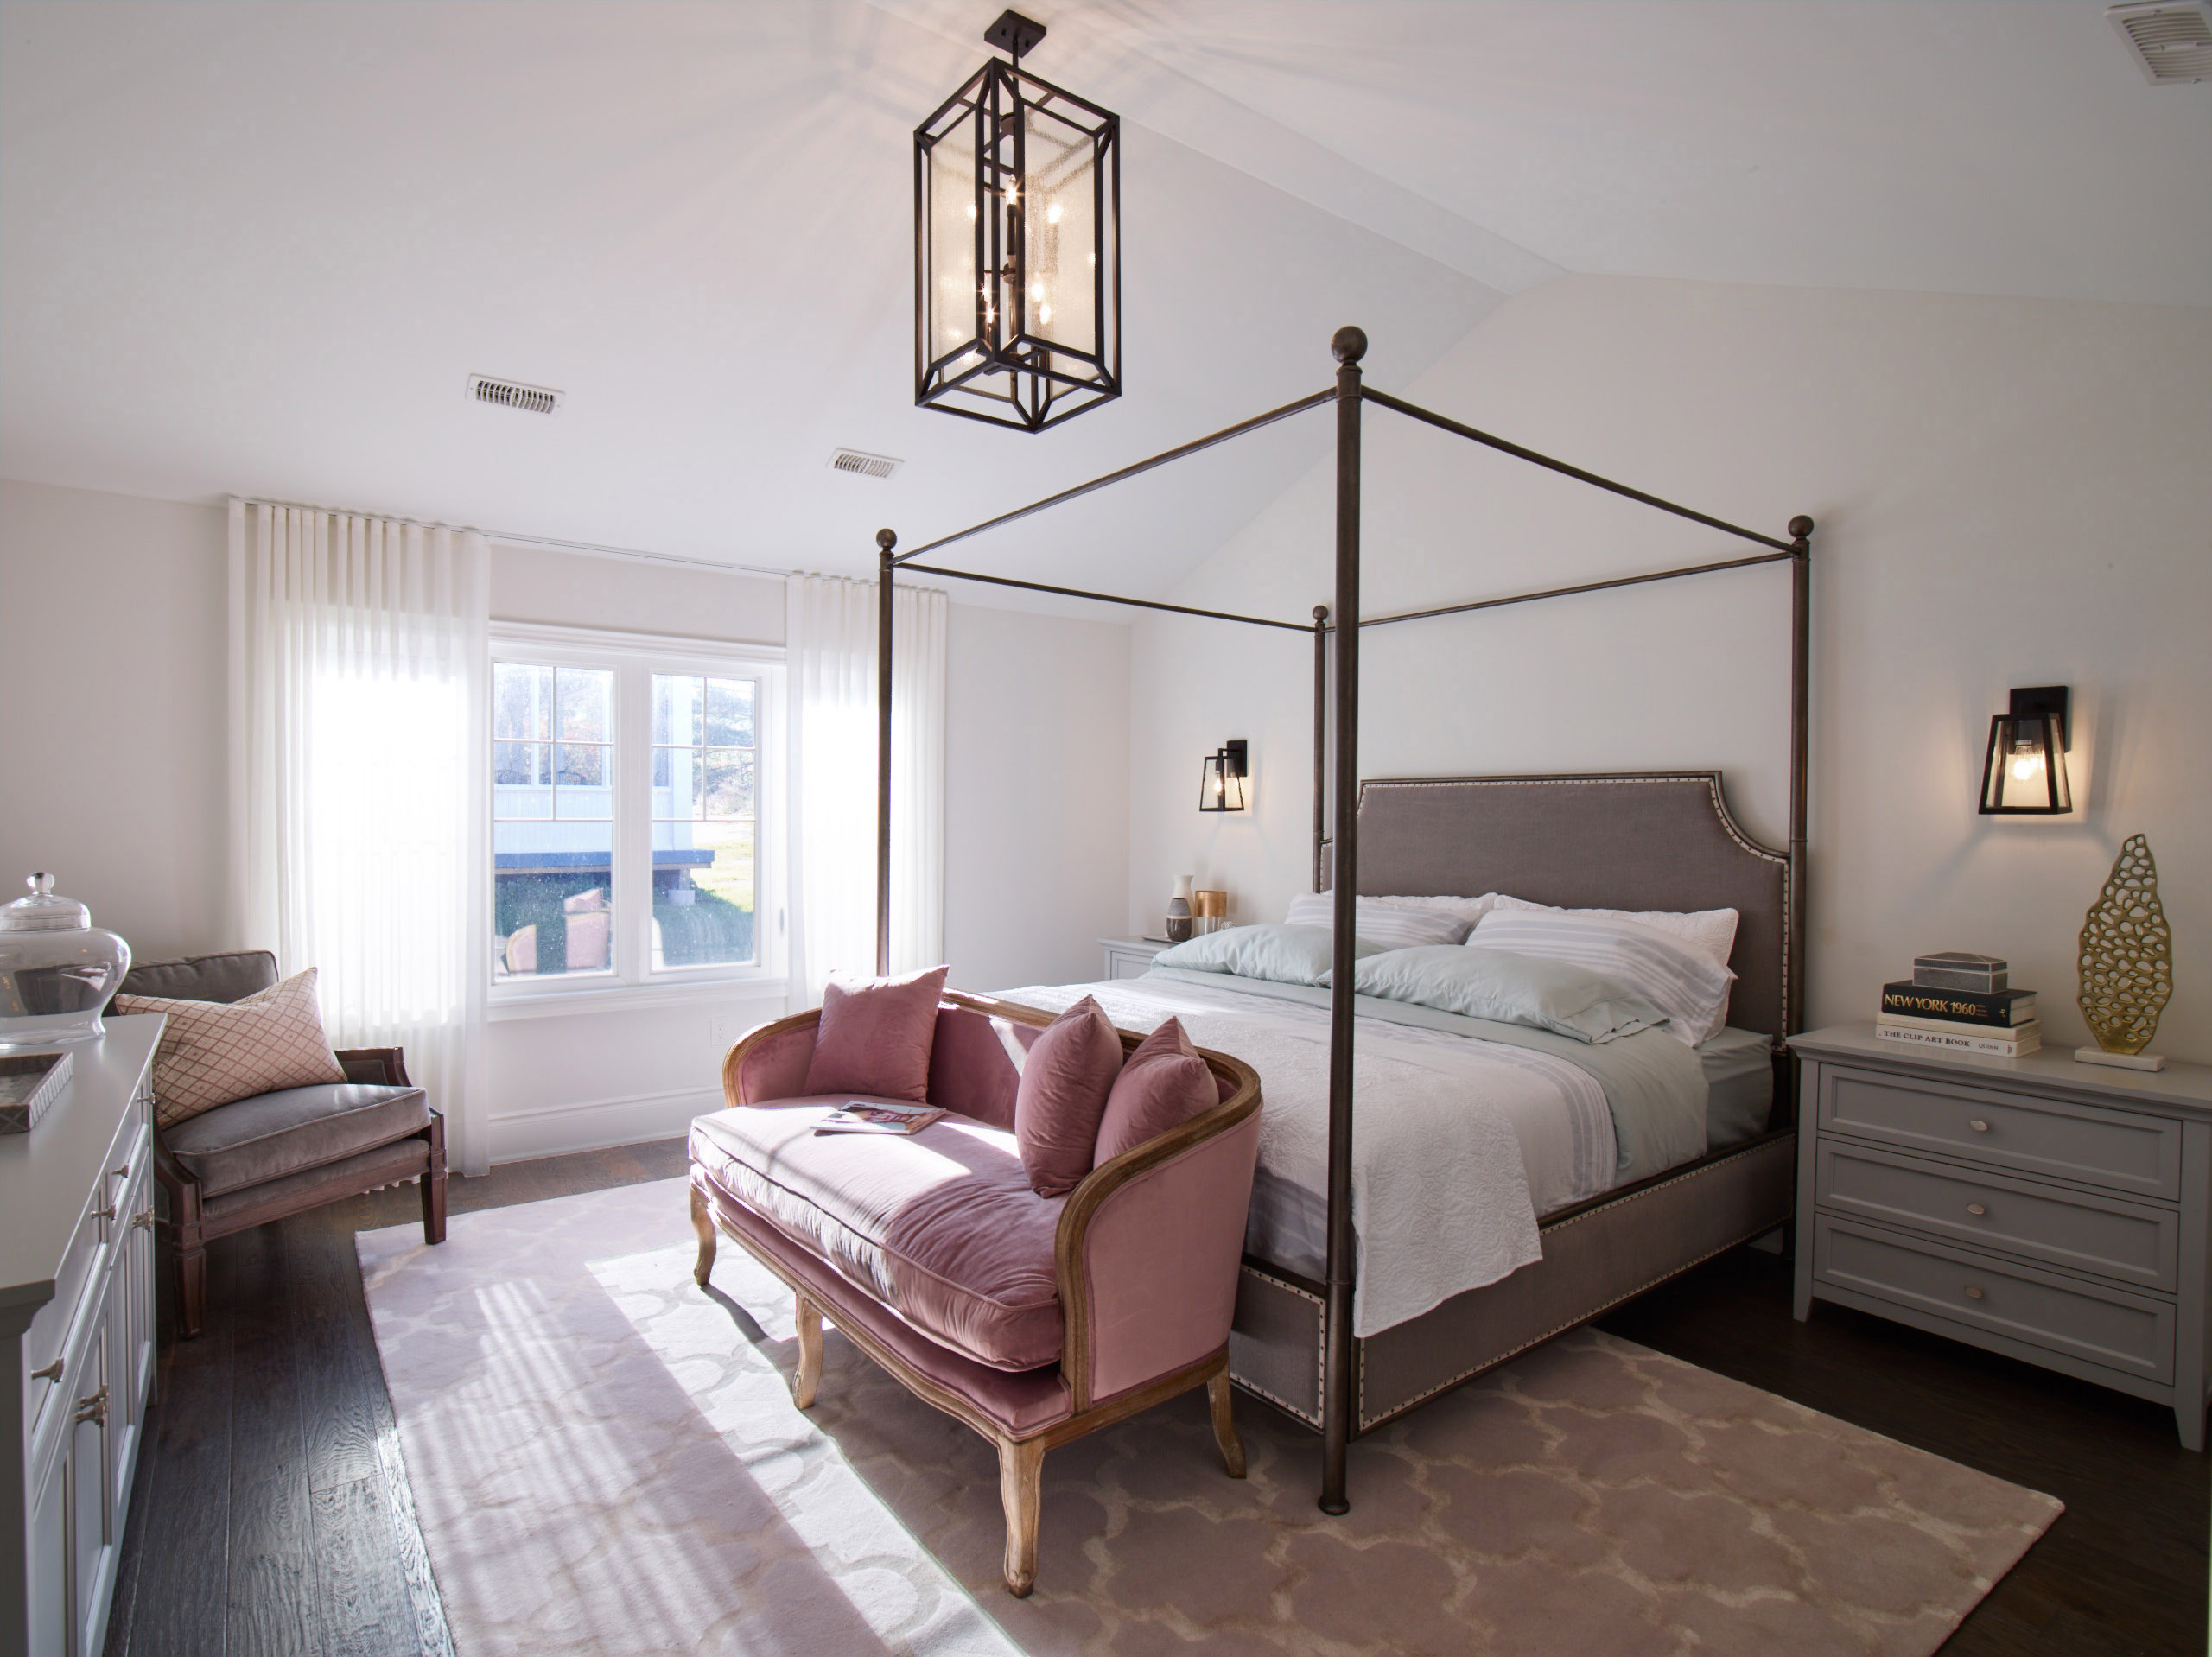 Oak Bay bedroom with four poster bed, pink velvet settee, and white and grey accents